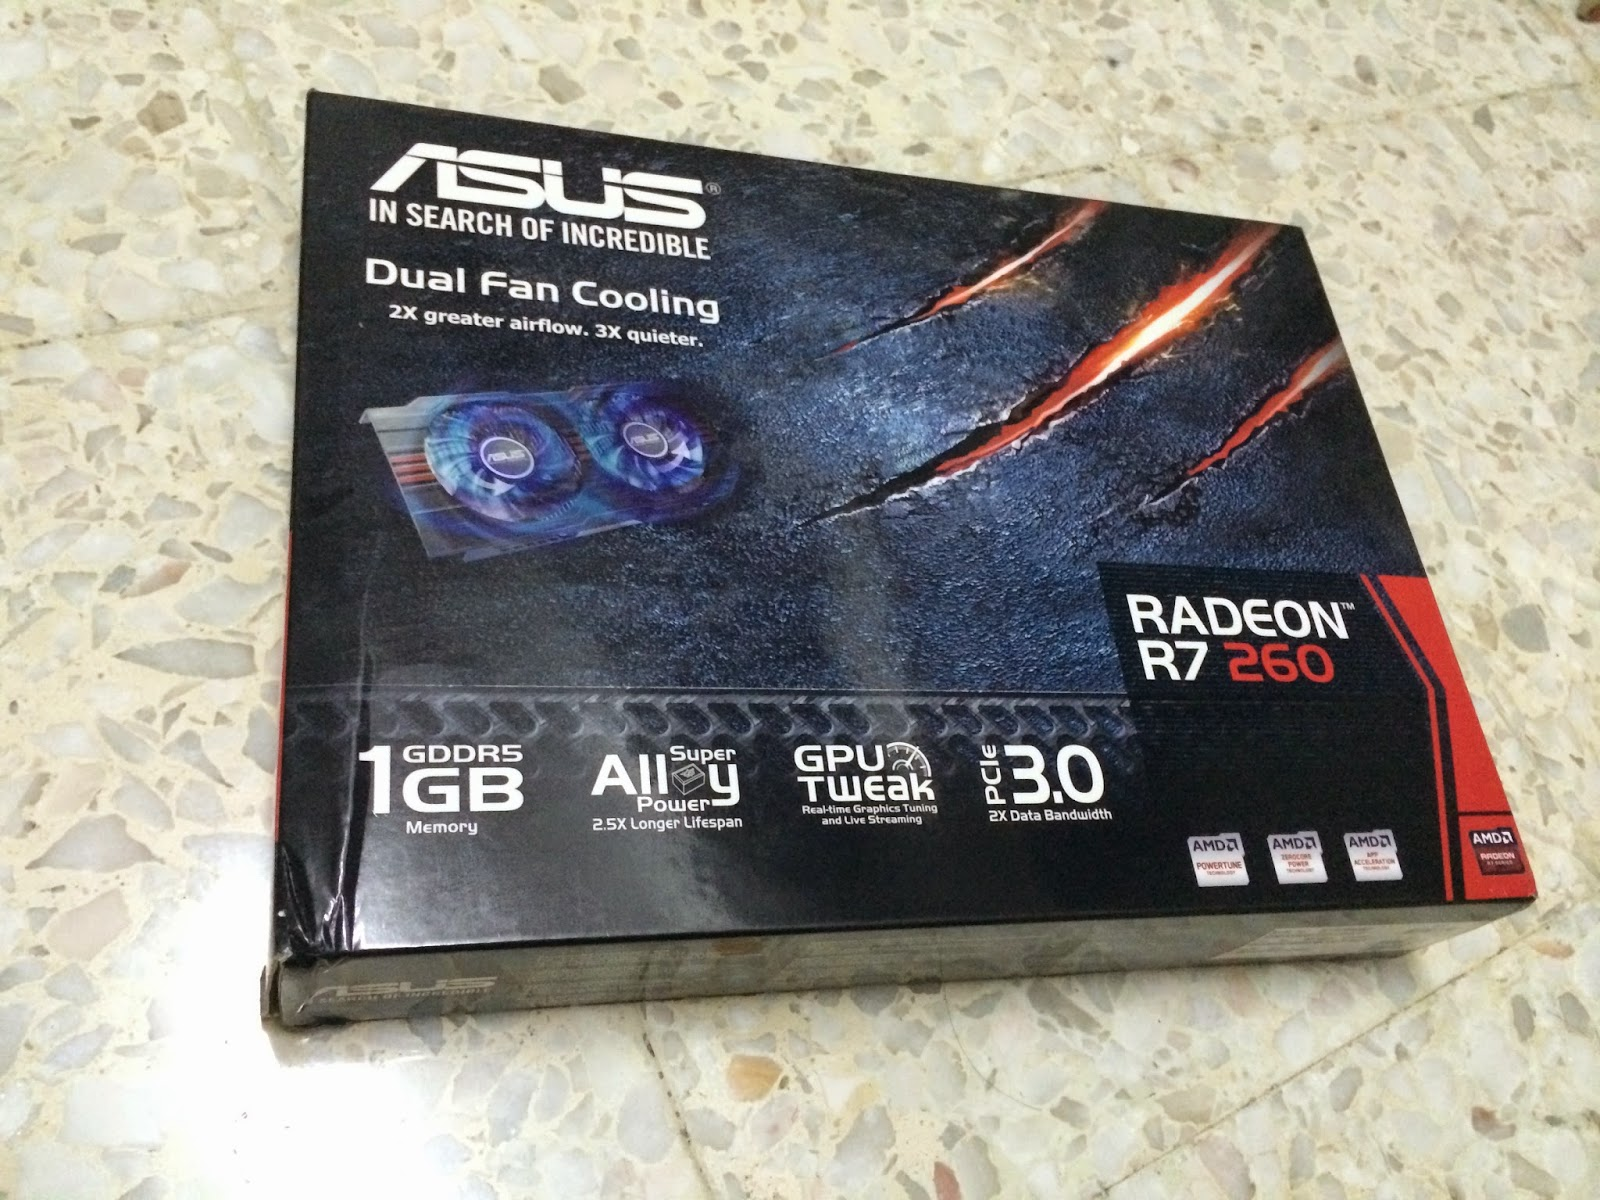 ASUS R7 260 Performance Review 27